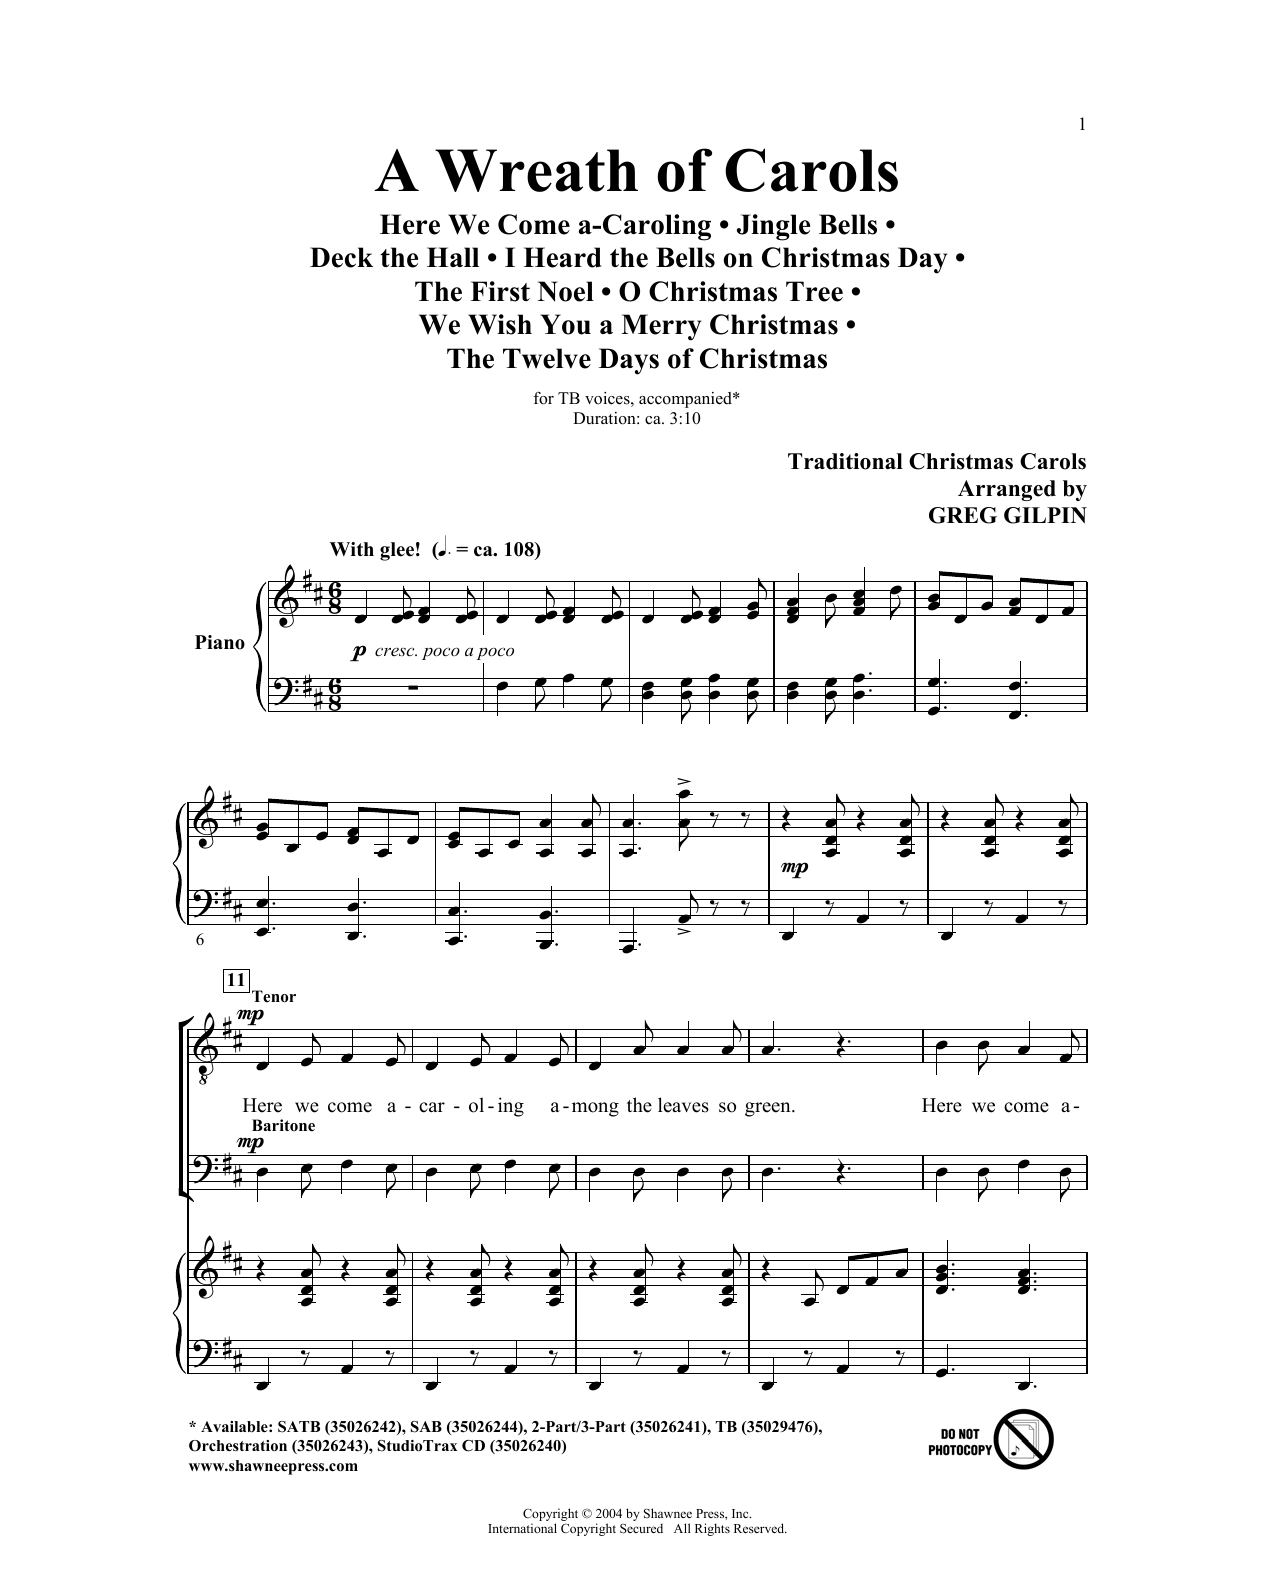 Greg Gilpin A Wreath Of Carols sheet music notes and chords. Download Printable PDF.